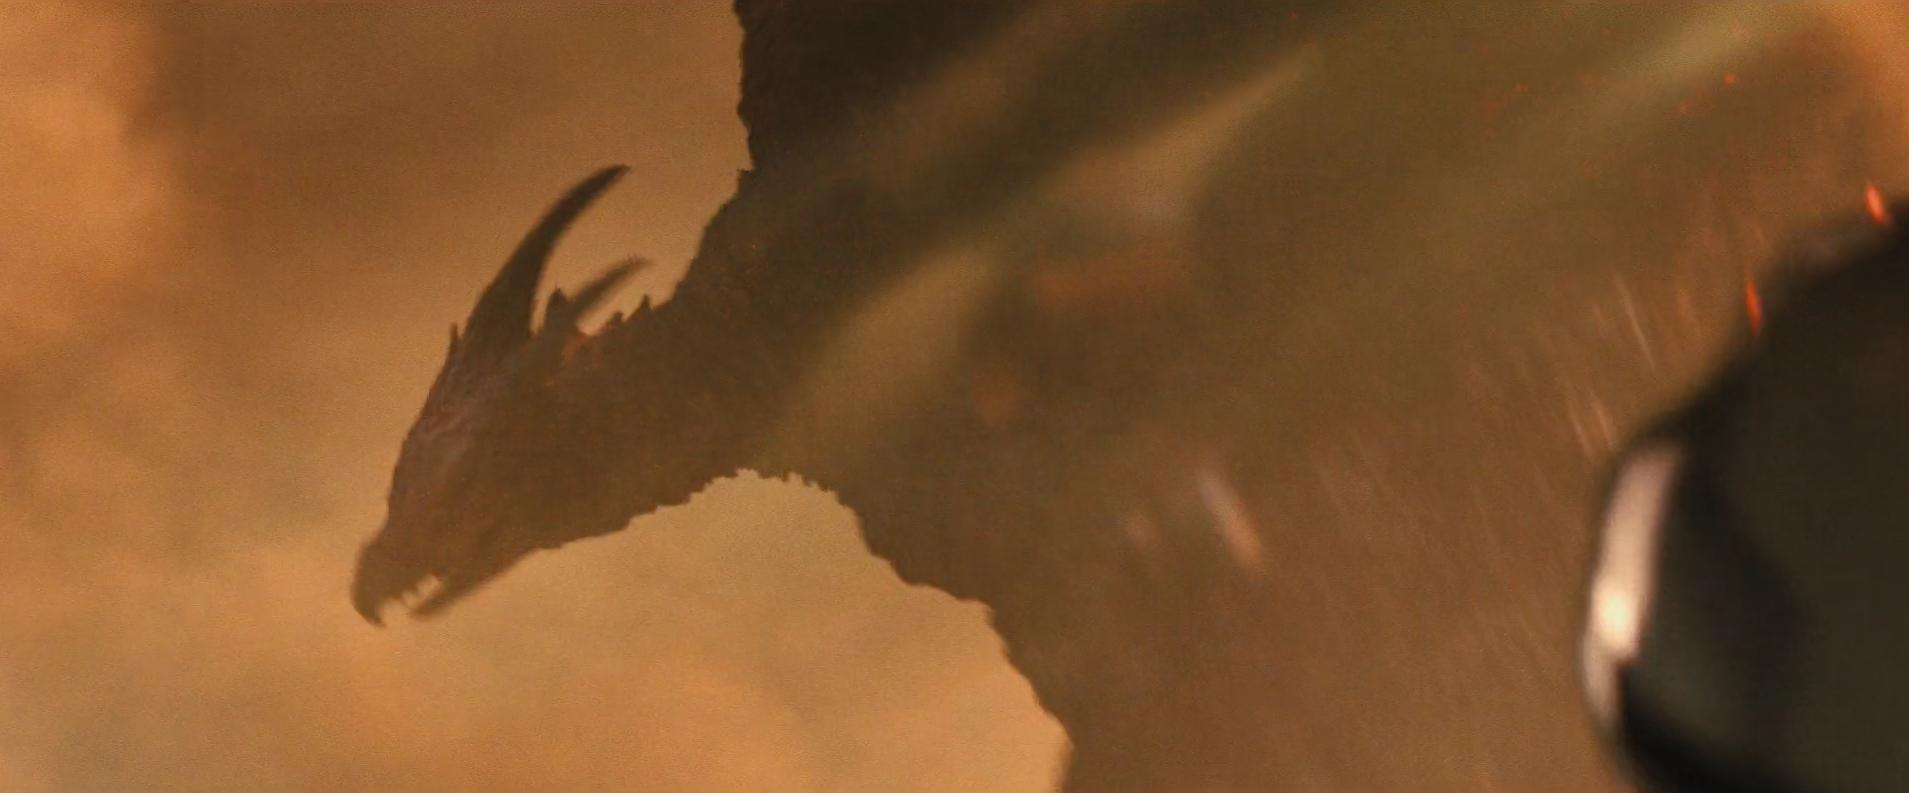 32 - Rodan fighting jets.png